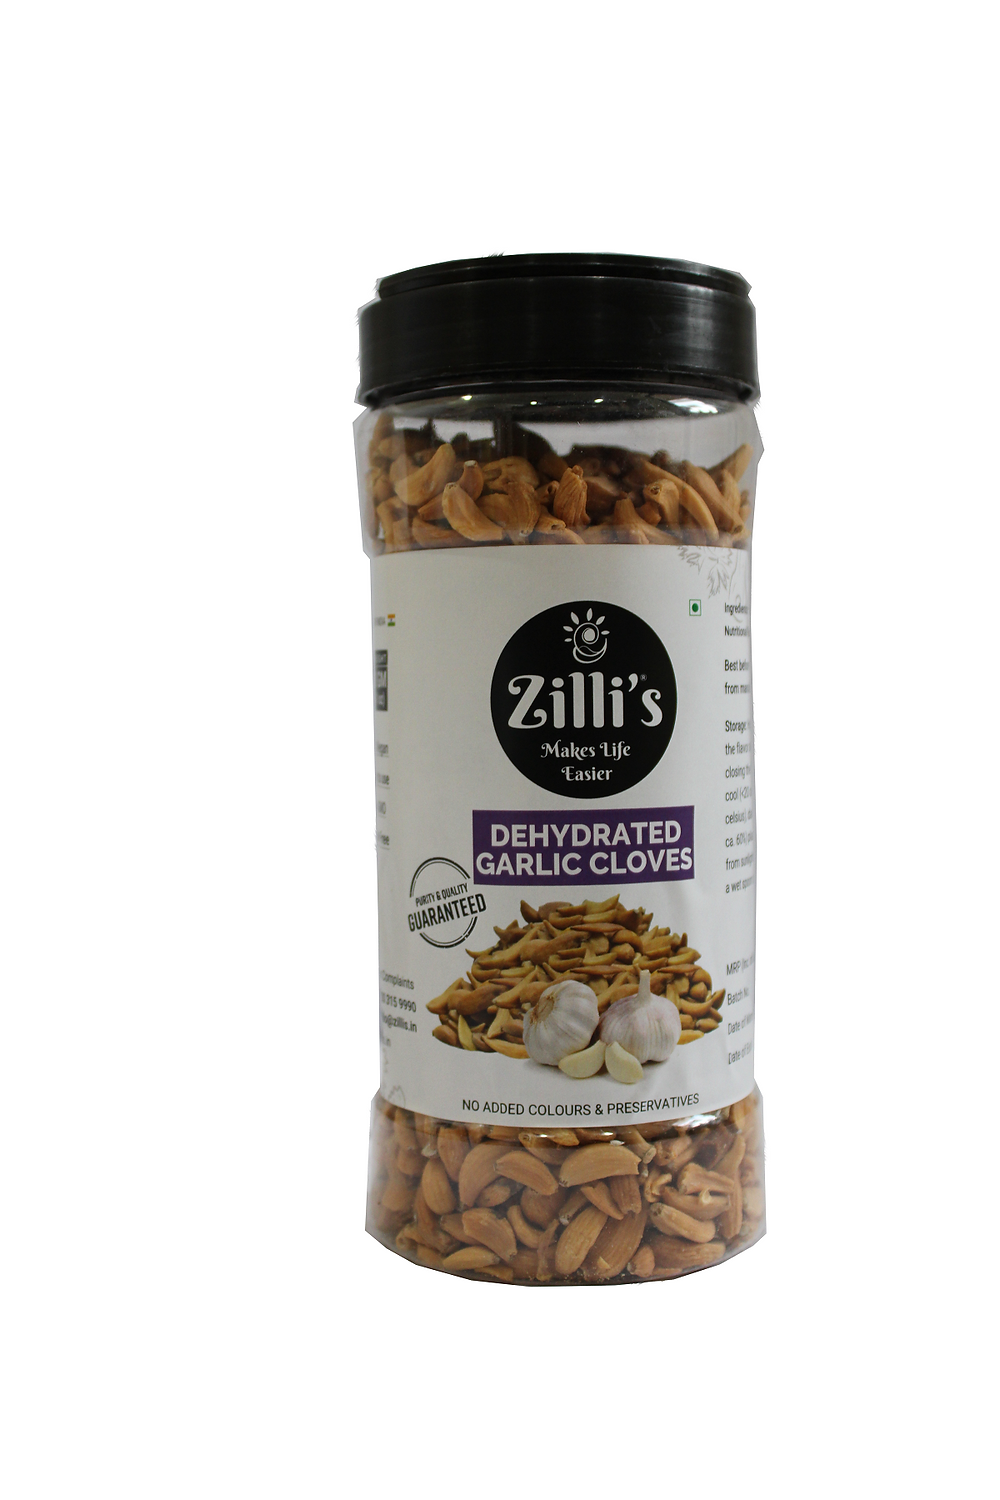 Cooking Made Easy with Zilli's New Range of Ready-To-Cook Products